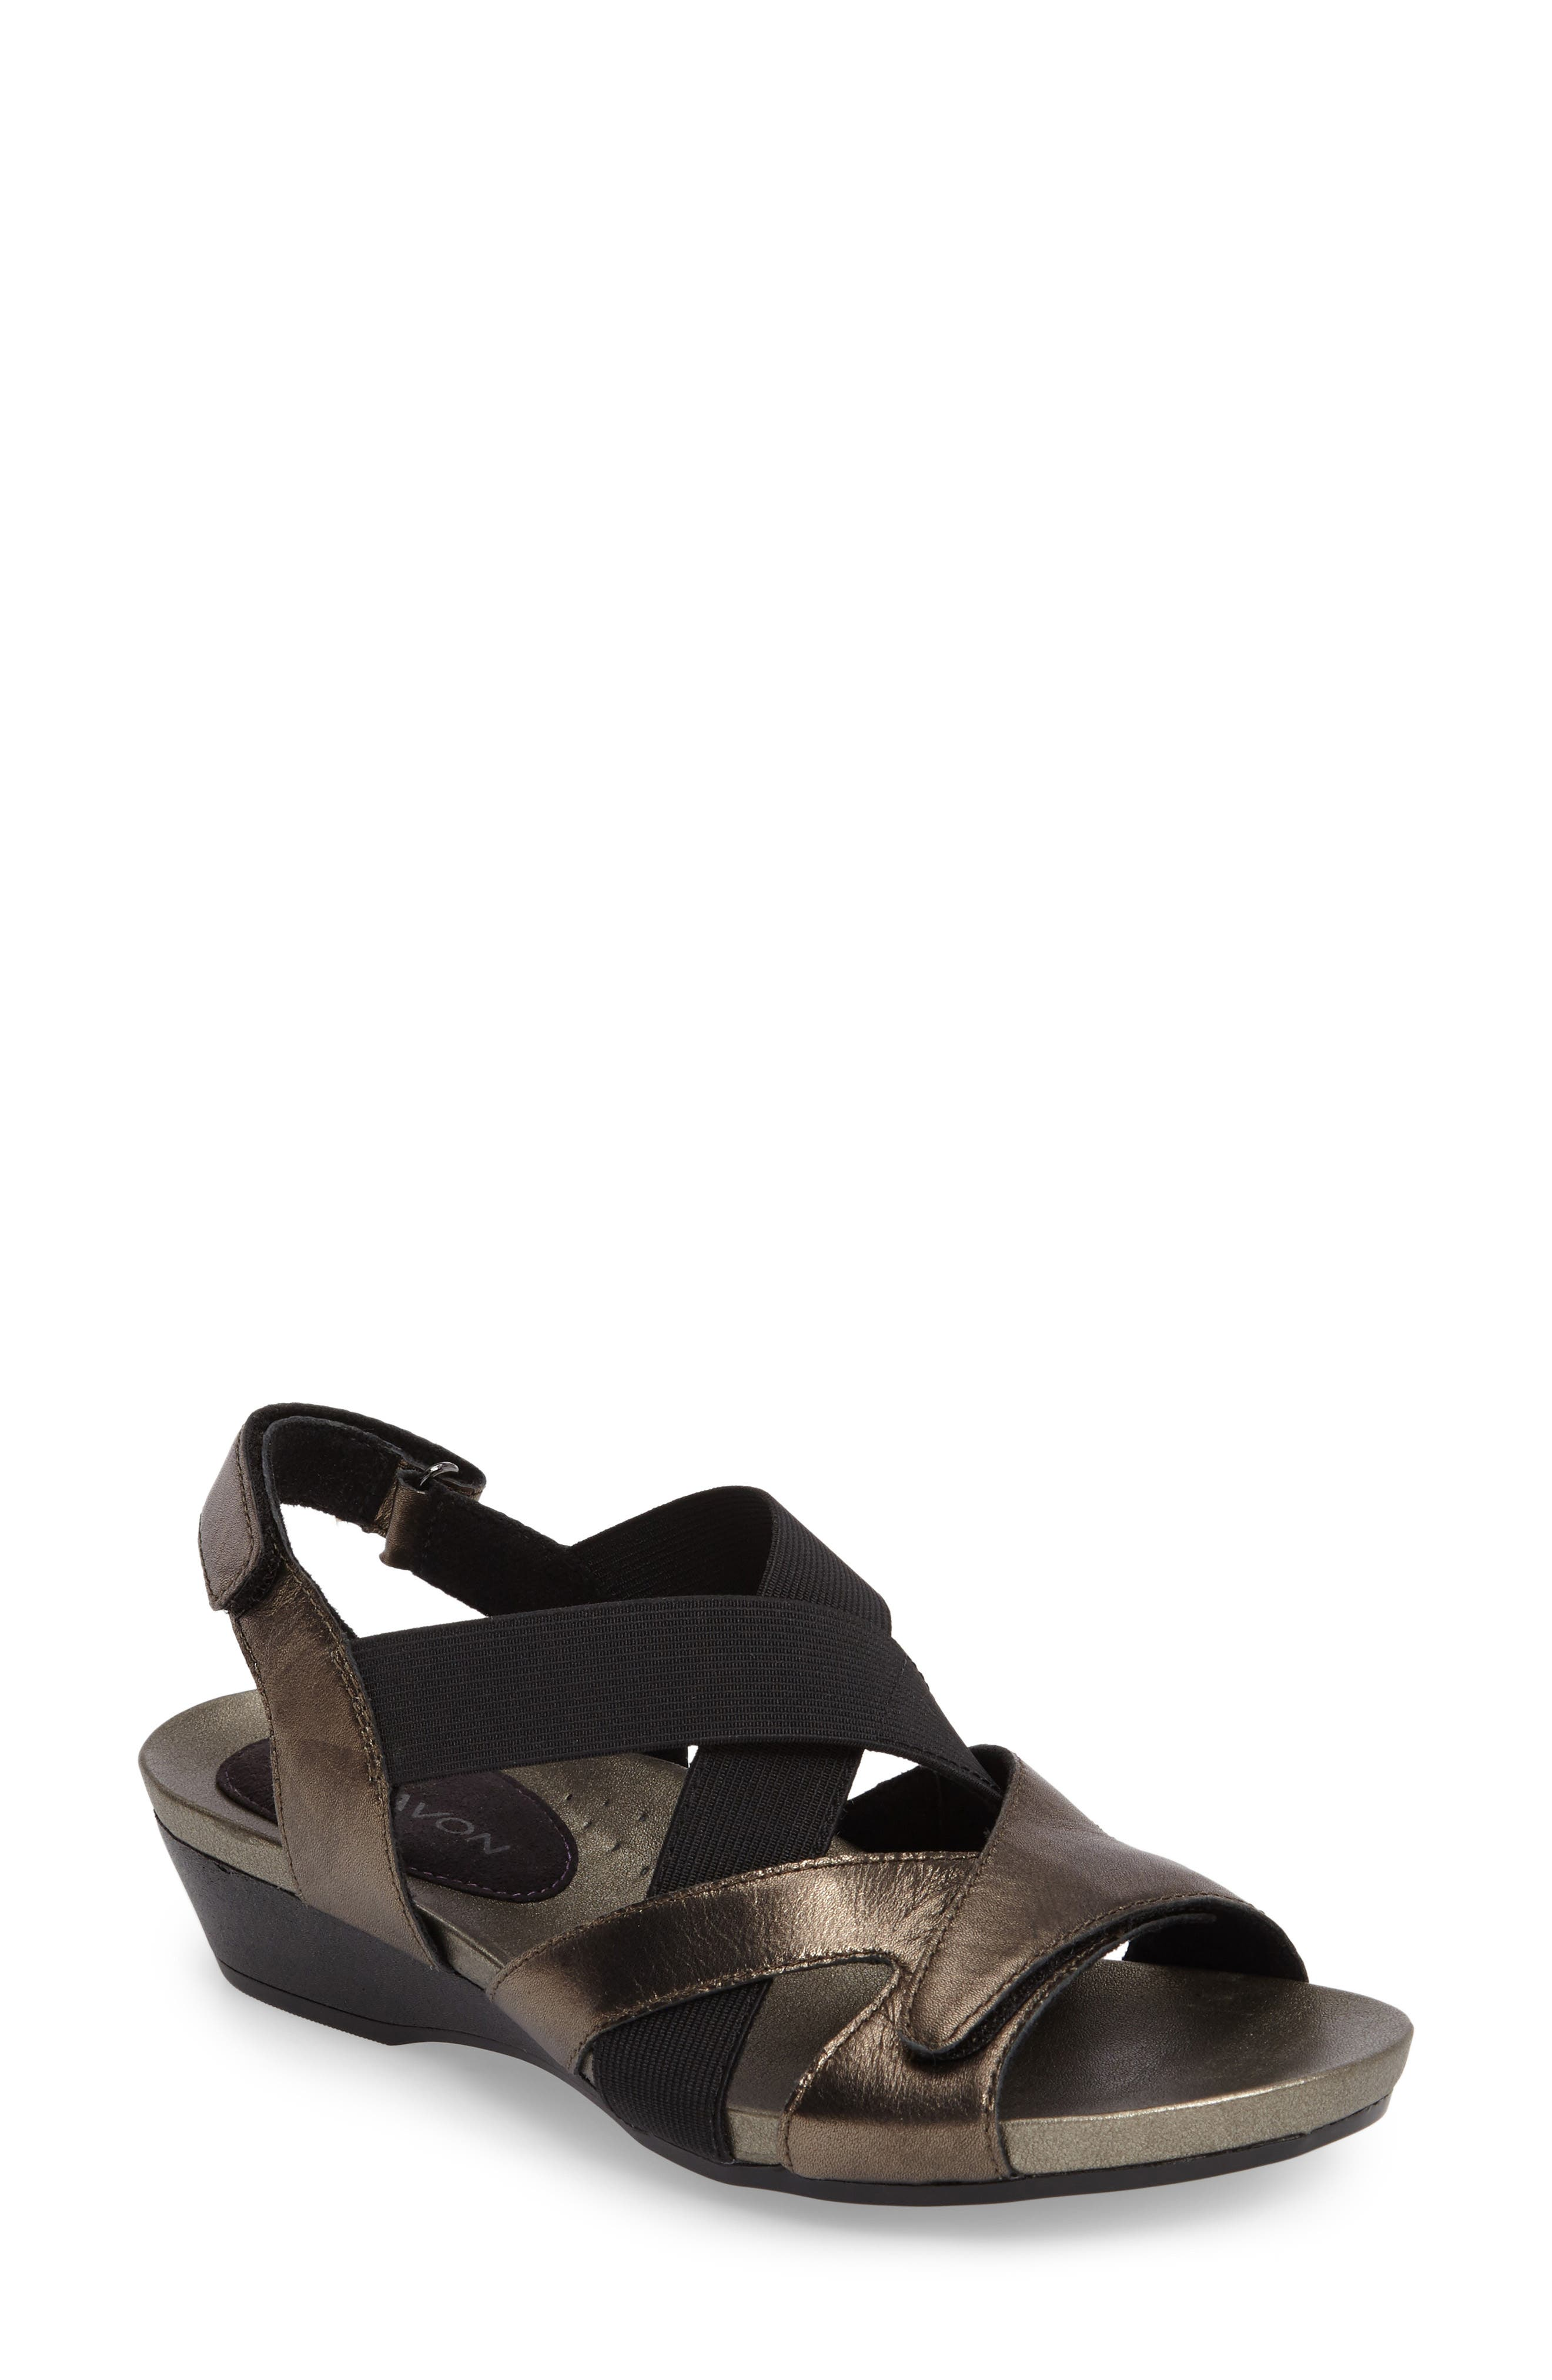 Standon Cross Strap Sandal,                             Main thumbnail 1, color,                             Pewter Fabric